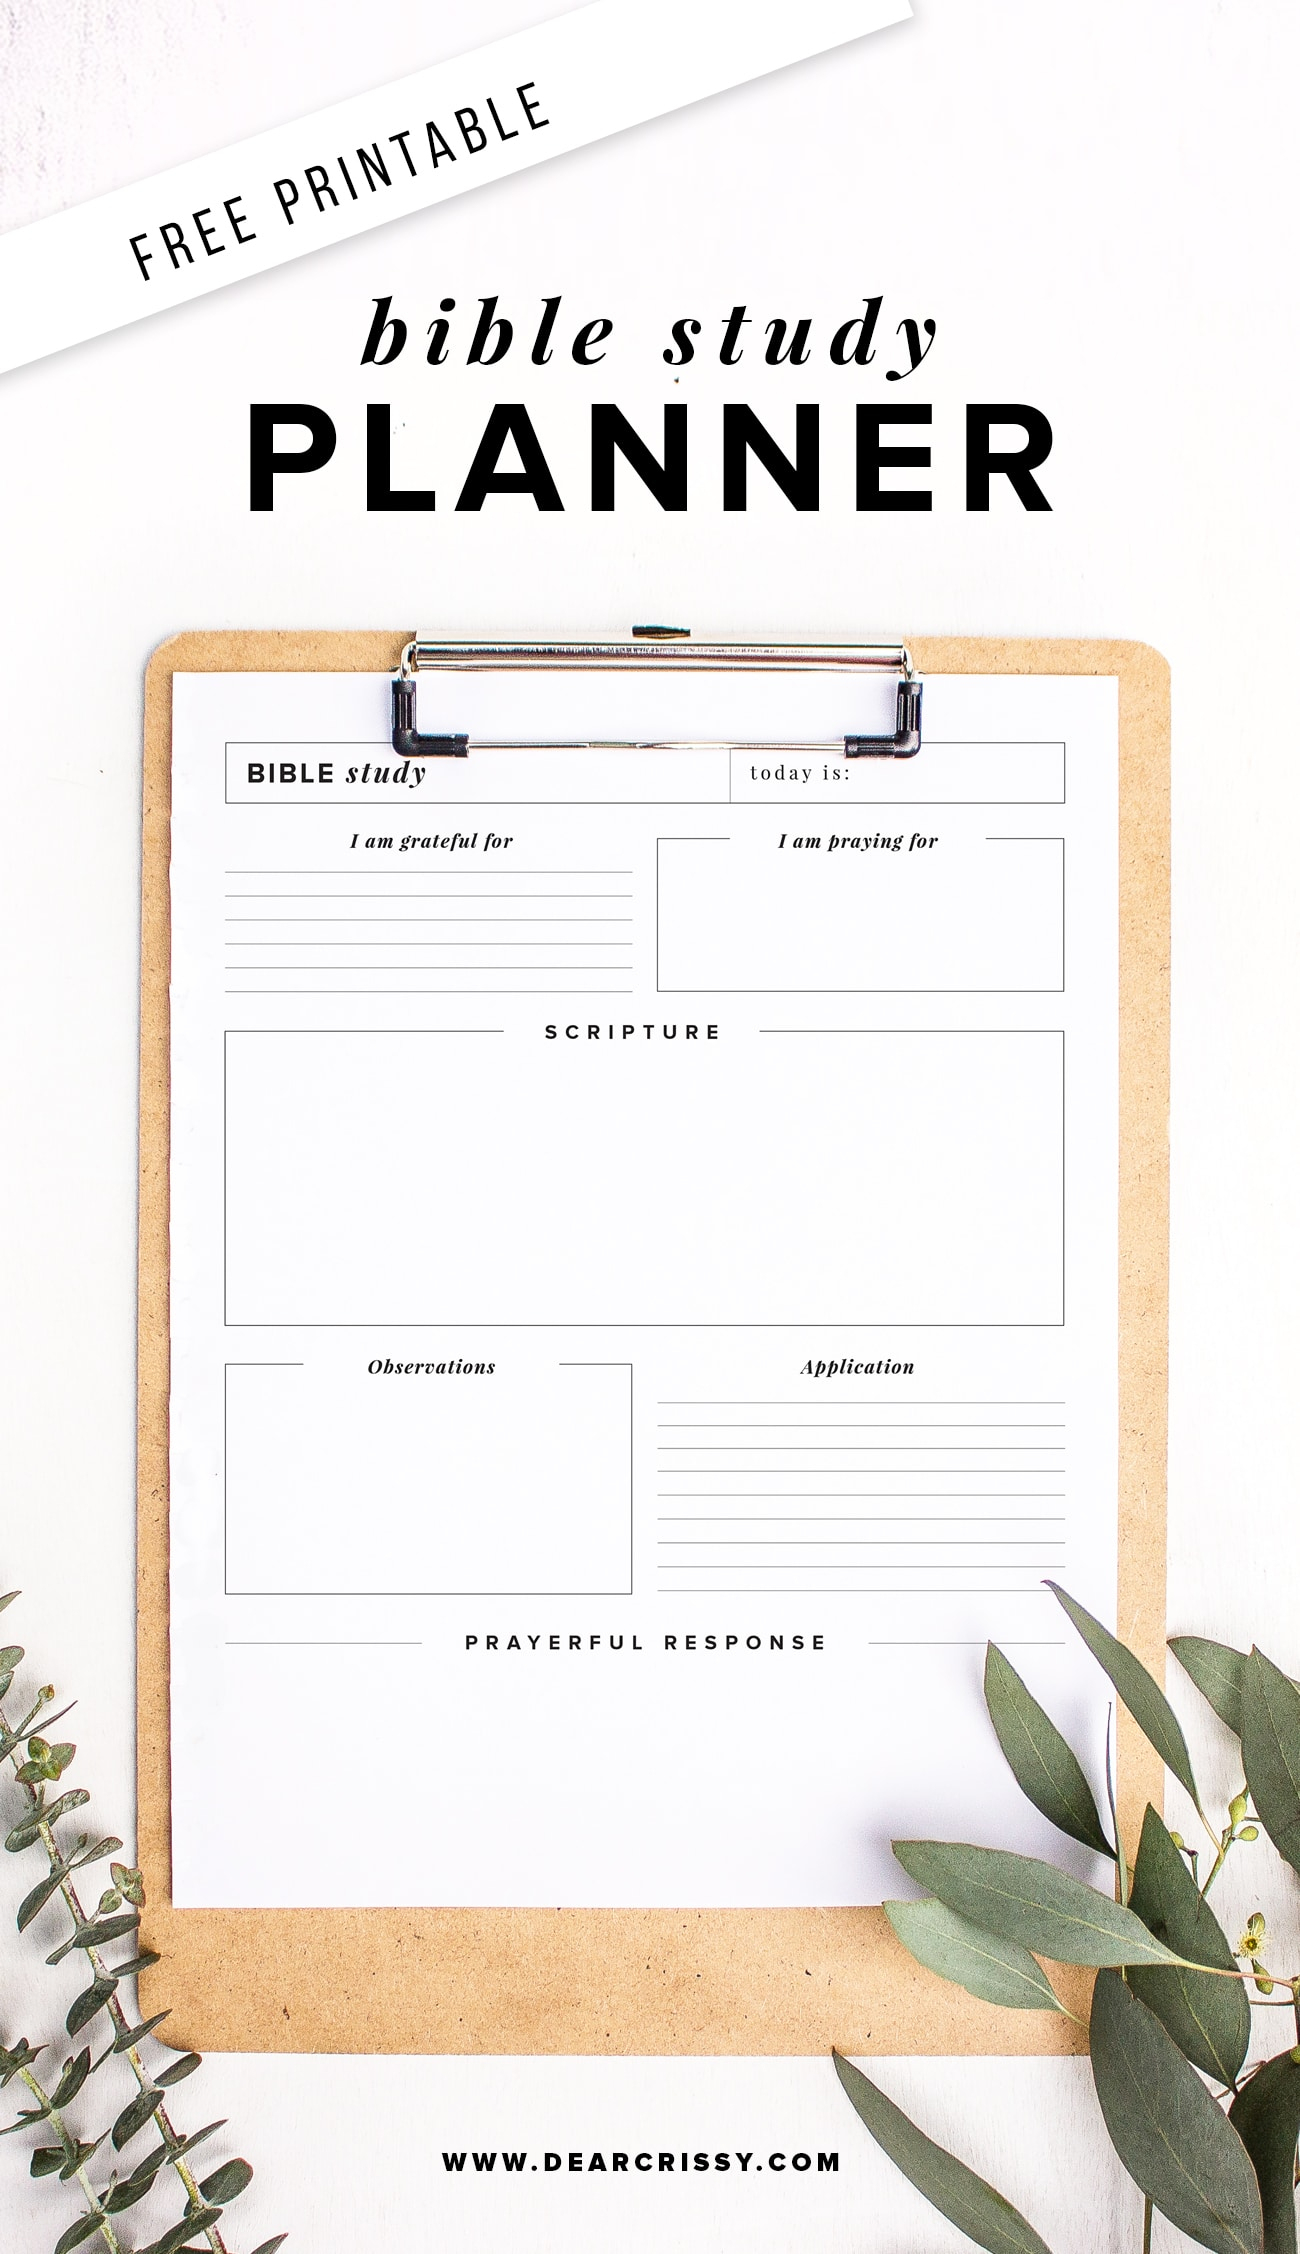 Free Printable Bible Study Planner - Soap Method Bible Study Worksheet! - Free Printable Bible Studies For Adults